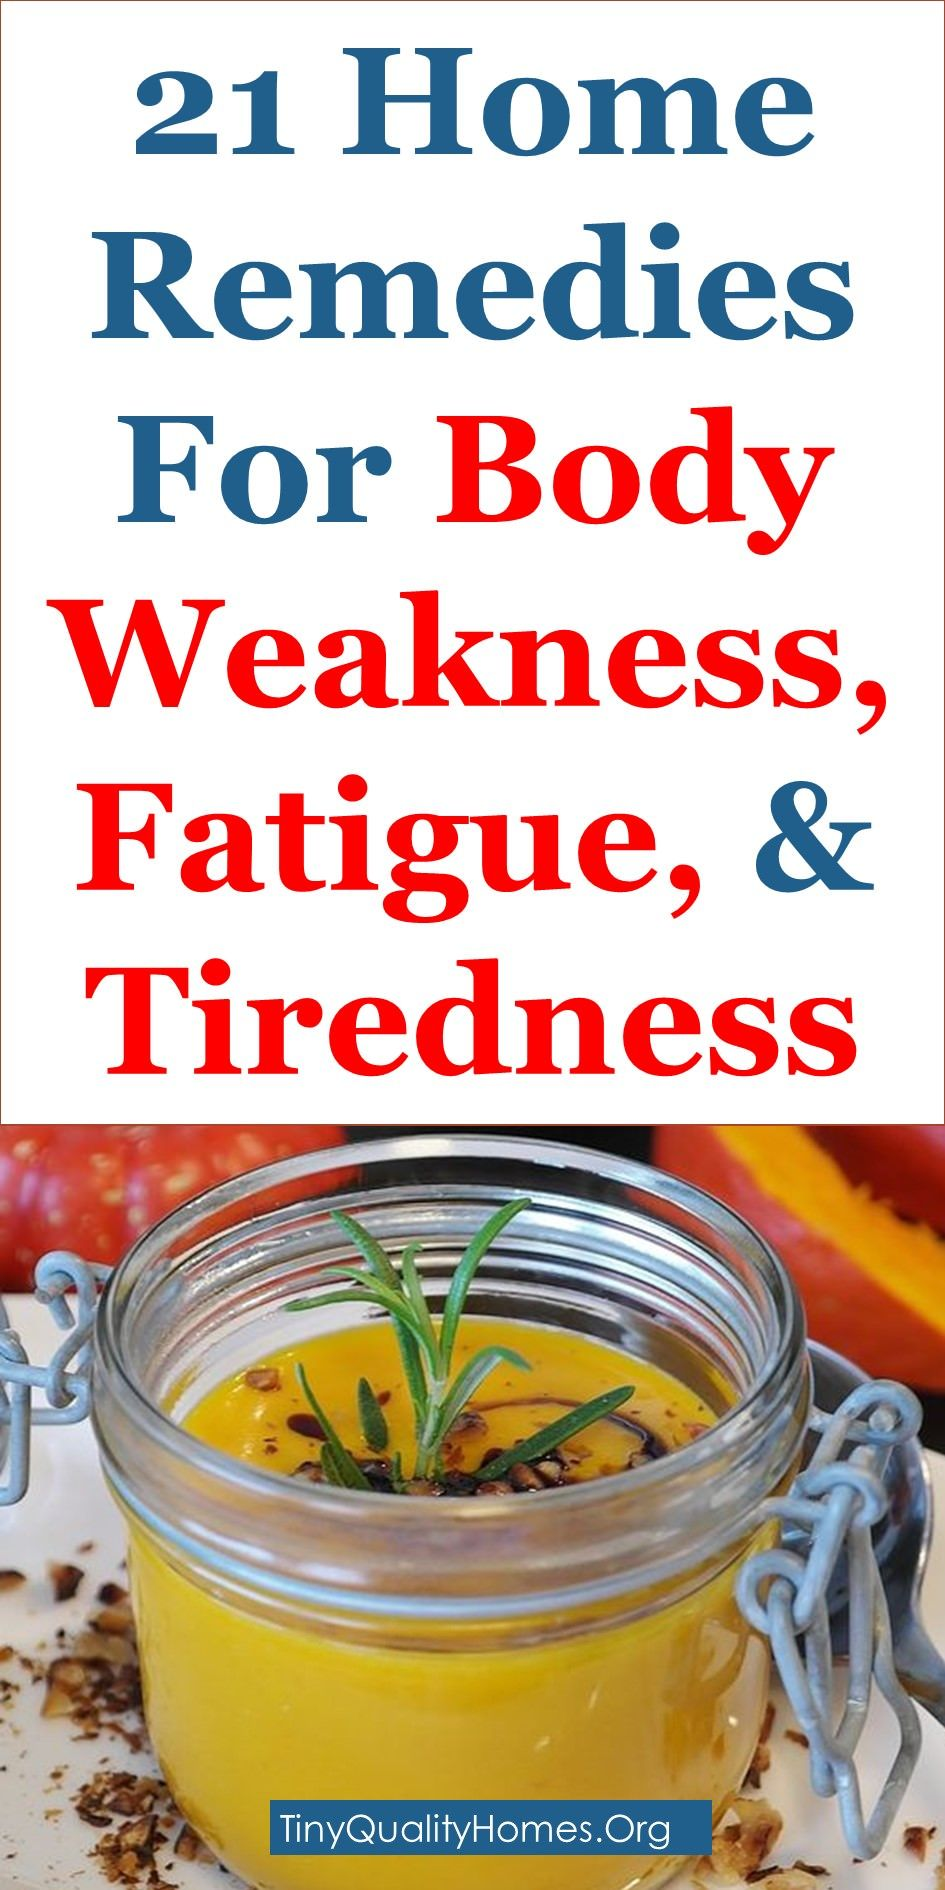 21 Home Remedies For Body Weakness, Lethargy, Fatigue, And